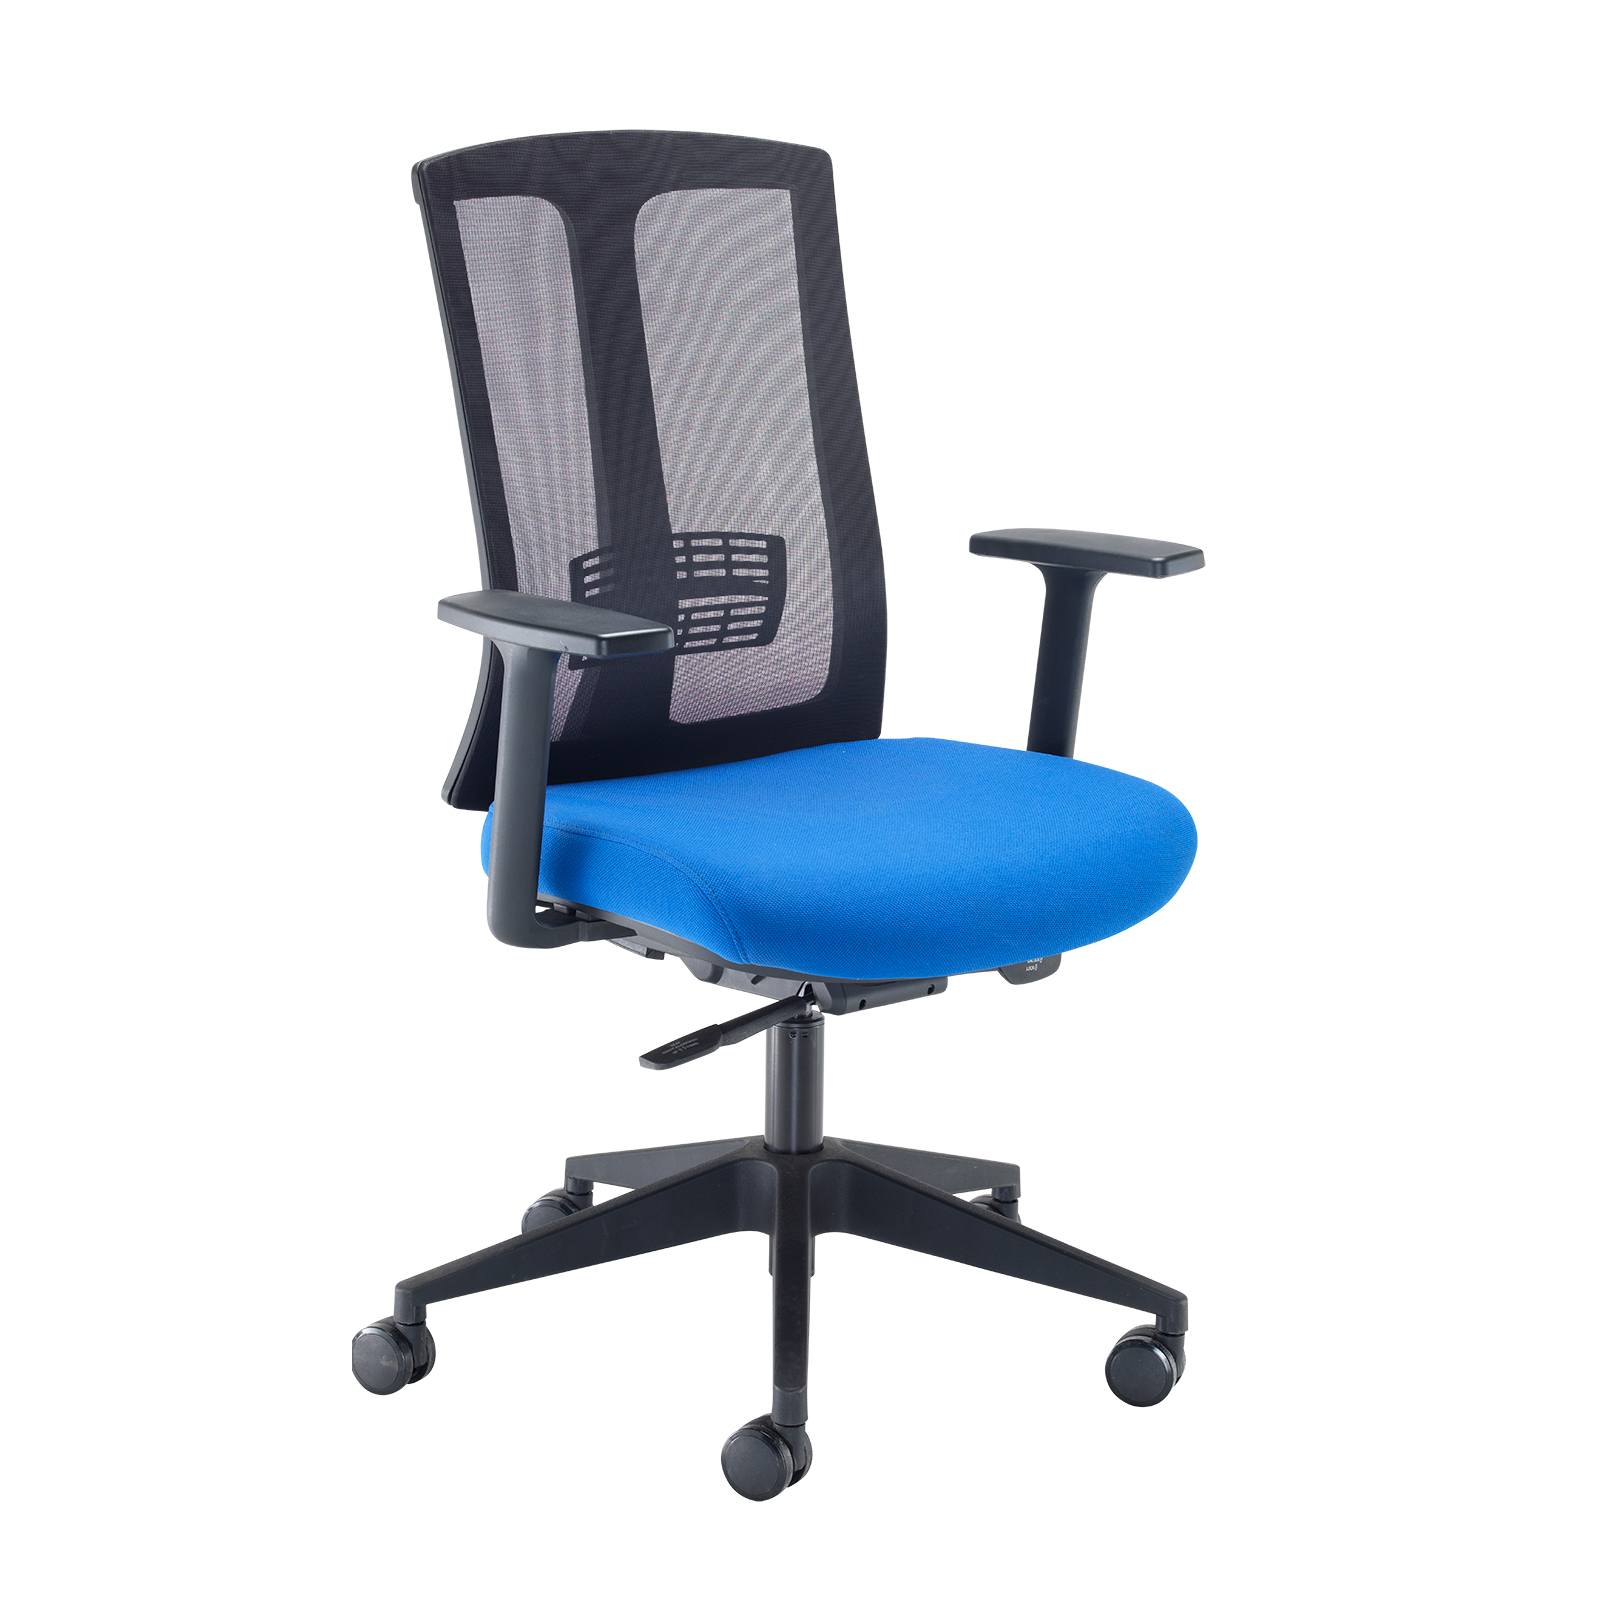 Desks Ronan mesh back operators chair with fixed arms - blue